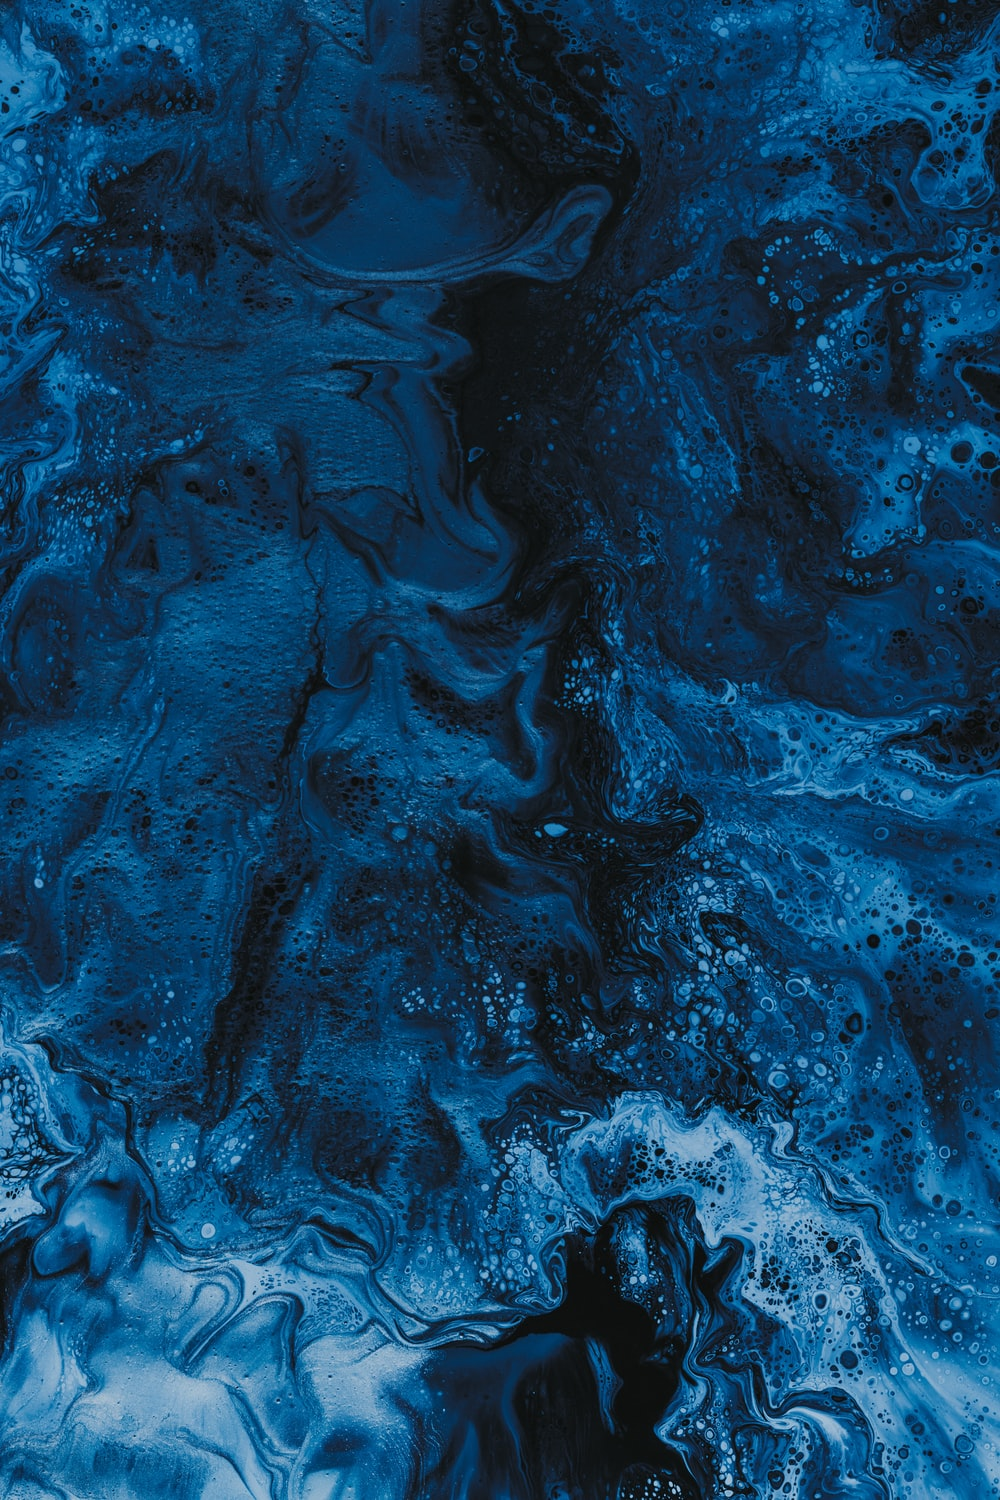 blue water with white bubbles